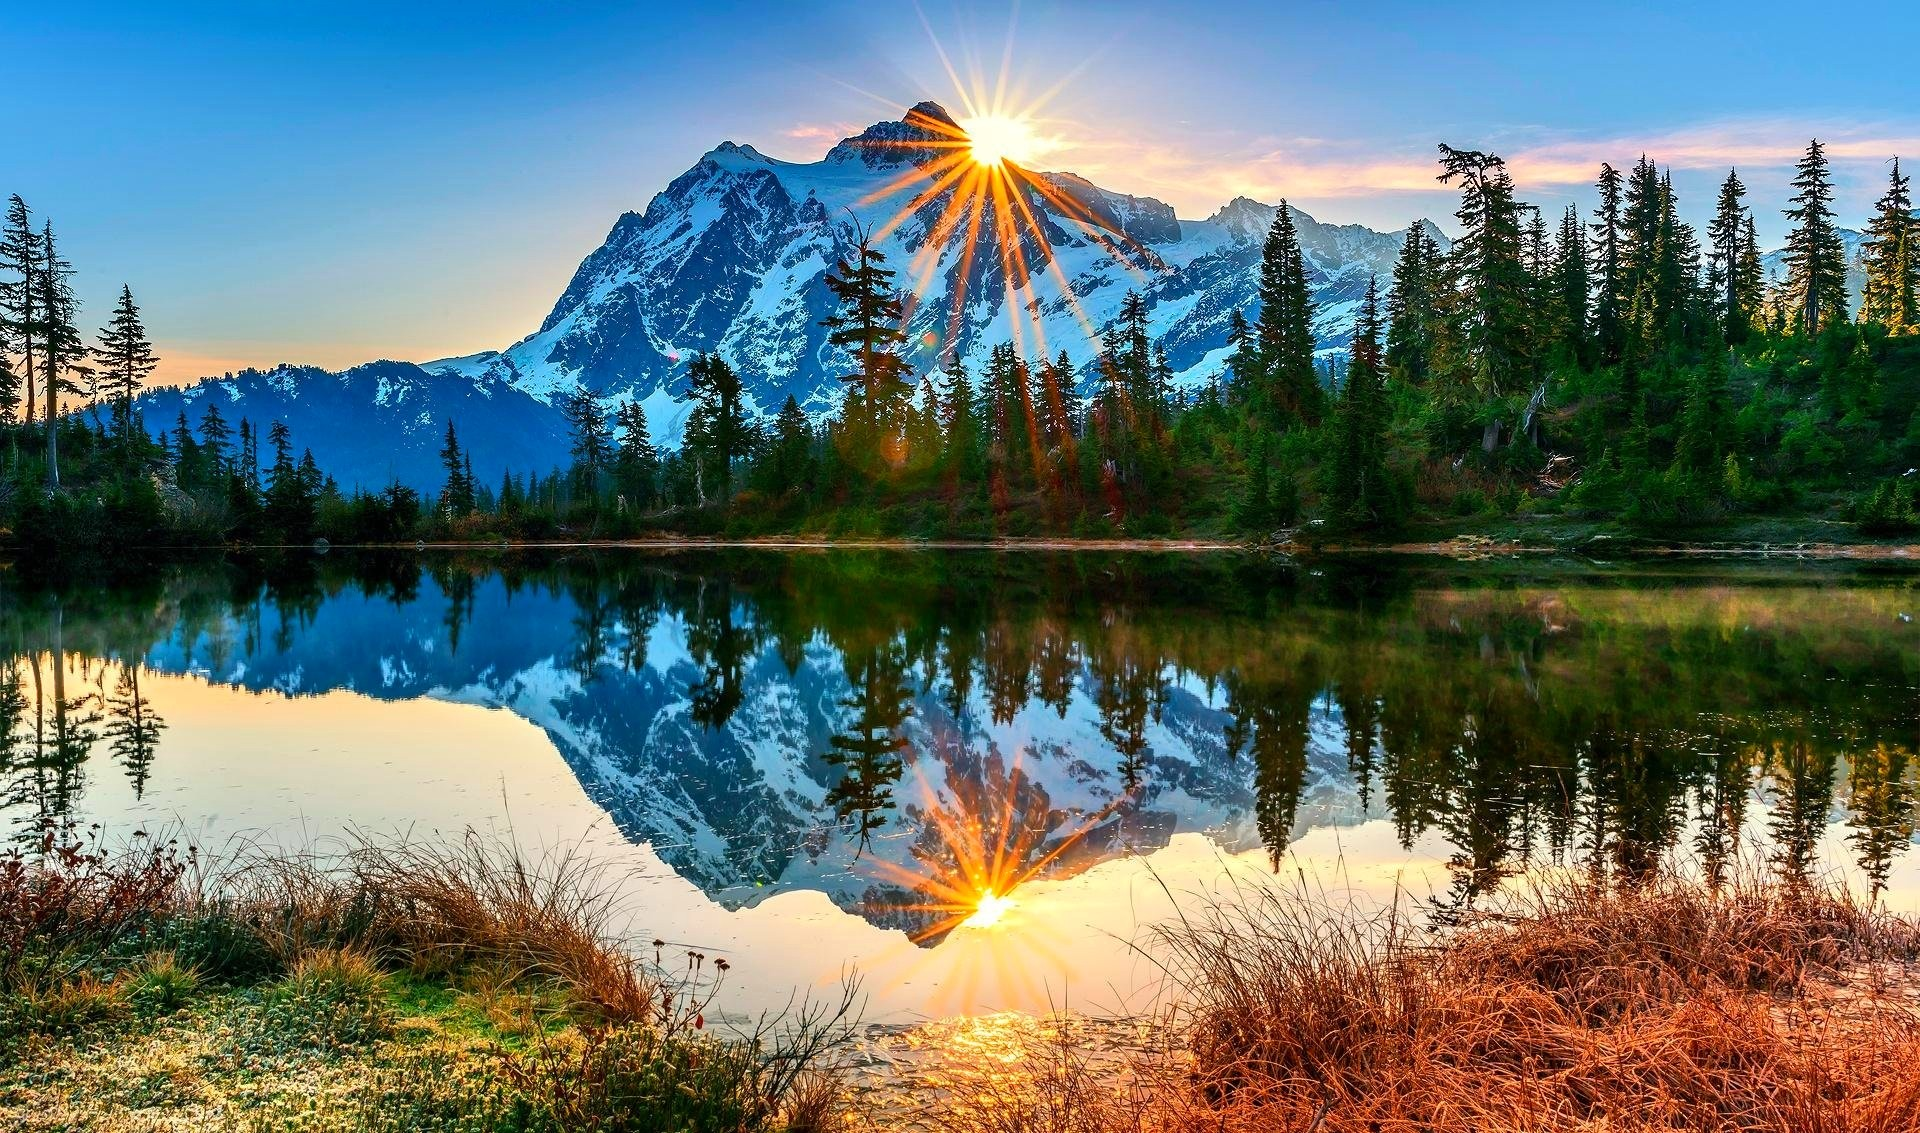 Mountains: Trees Snowy Reflection Mountain Peaks Sunrays Lake Forest ...